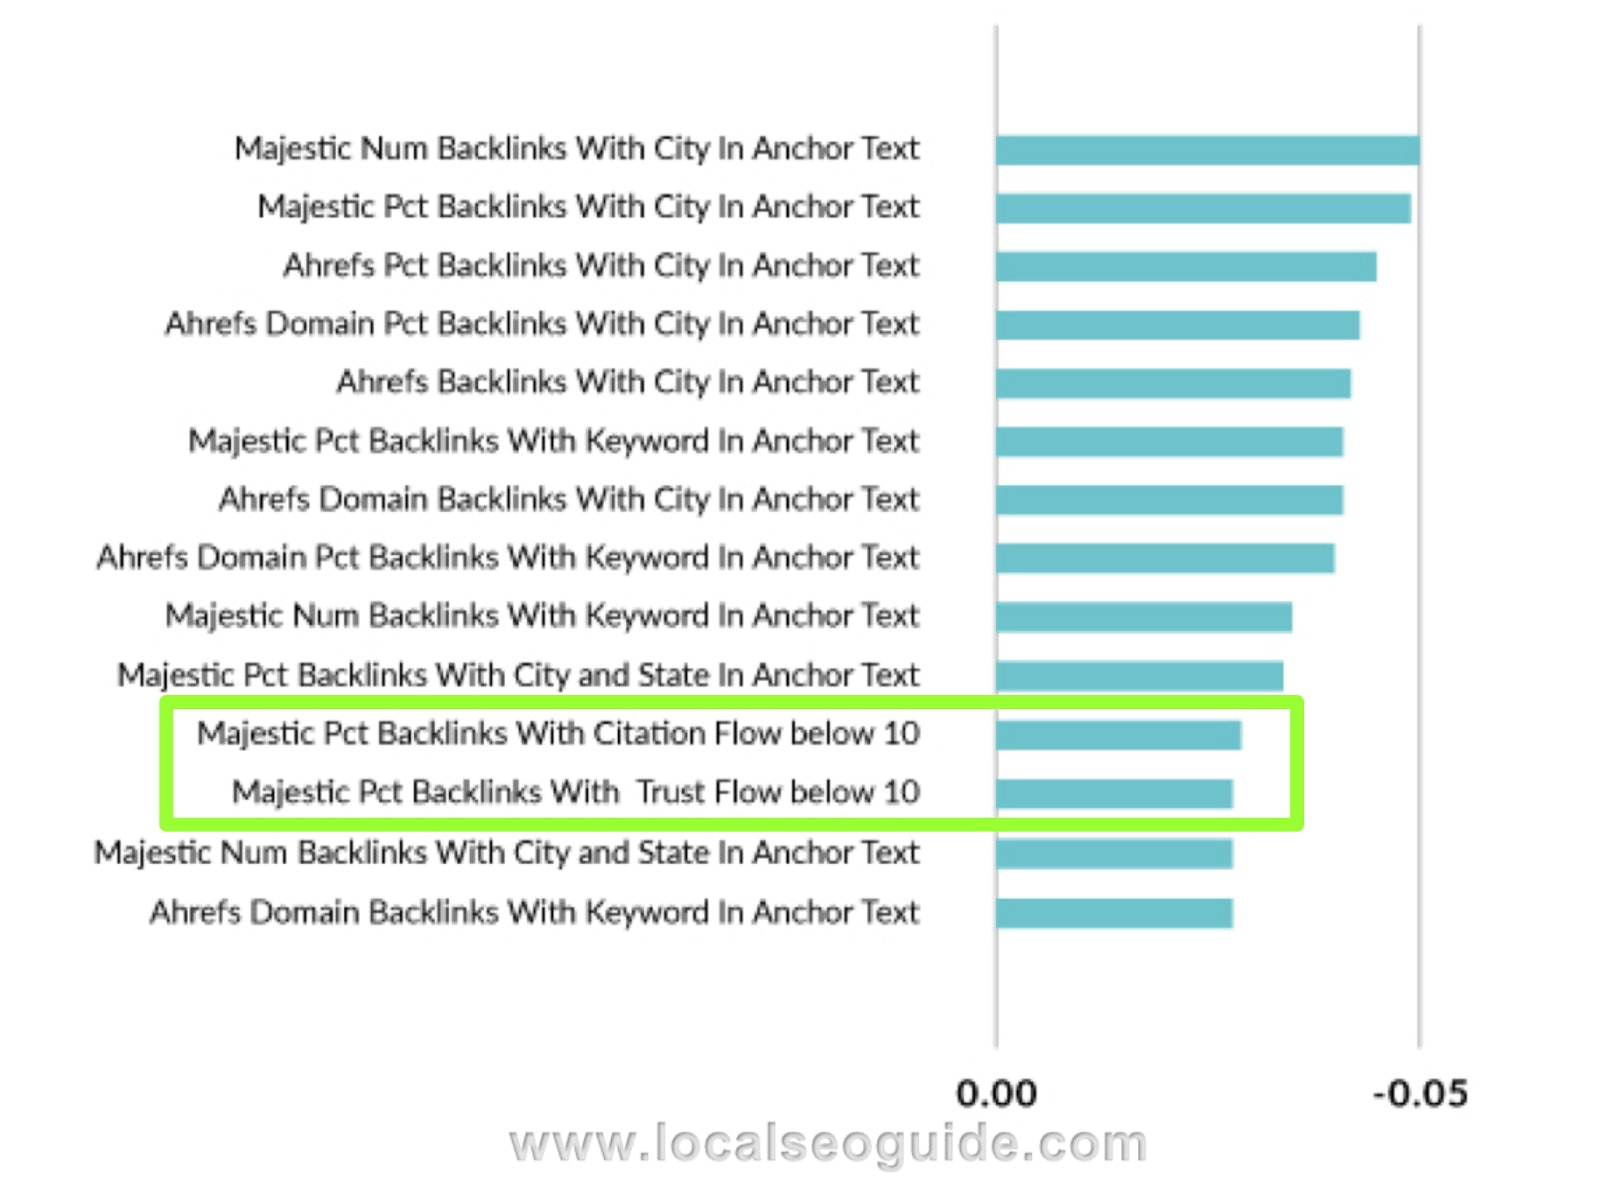 Local SEO Guide Ranking Factors